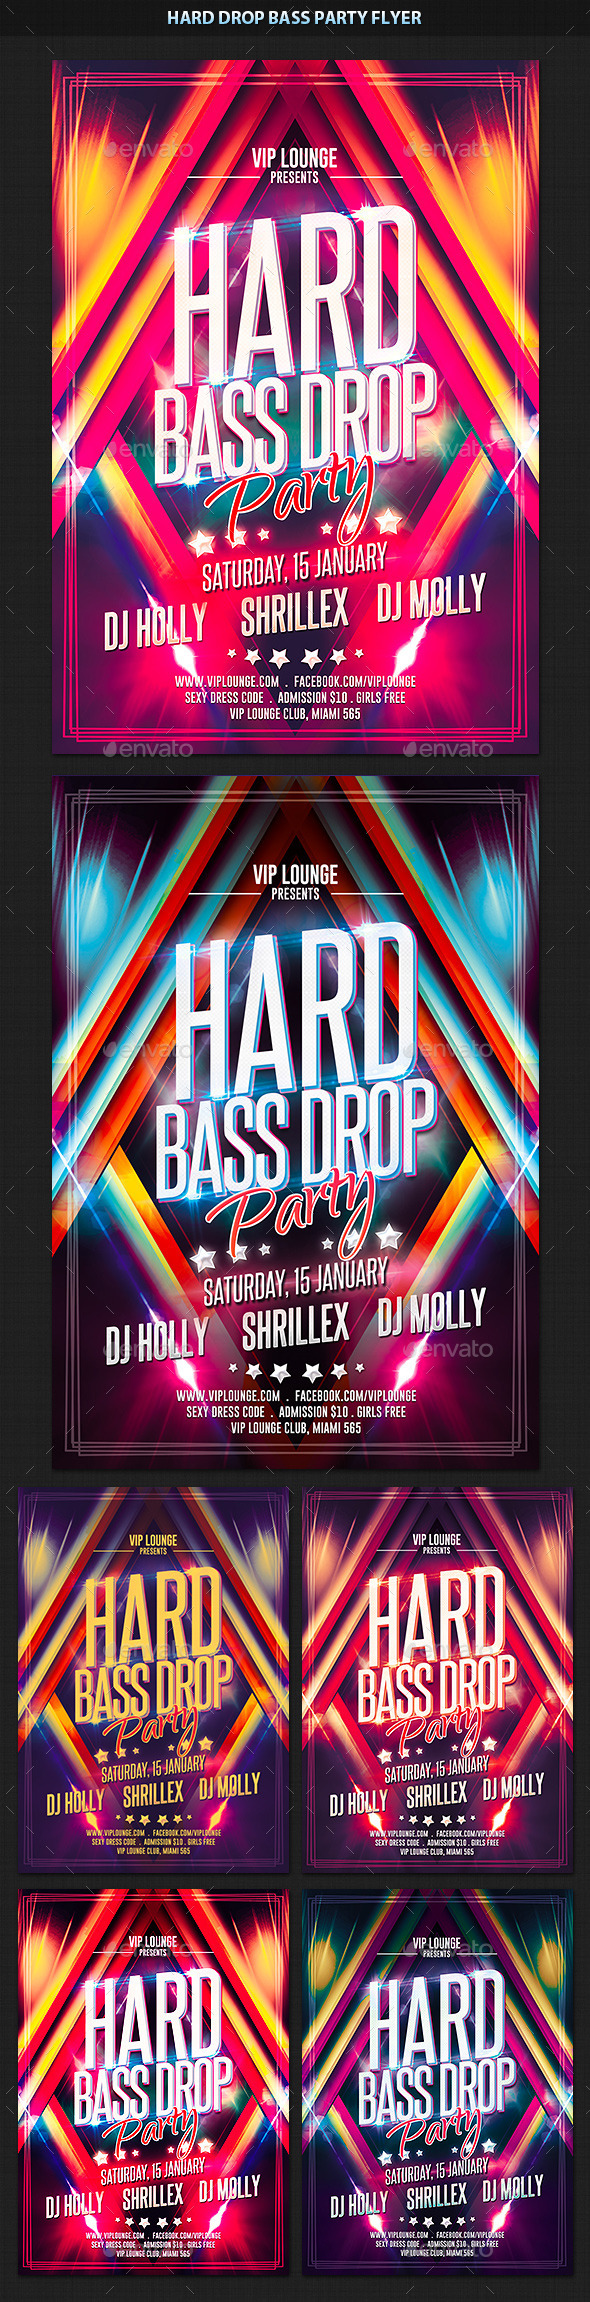 Hard Bass Drop Party Flyer - Clubs & Parties Events